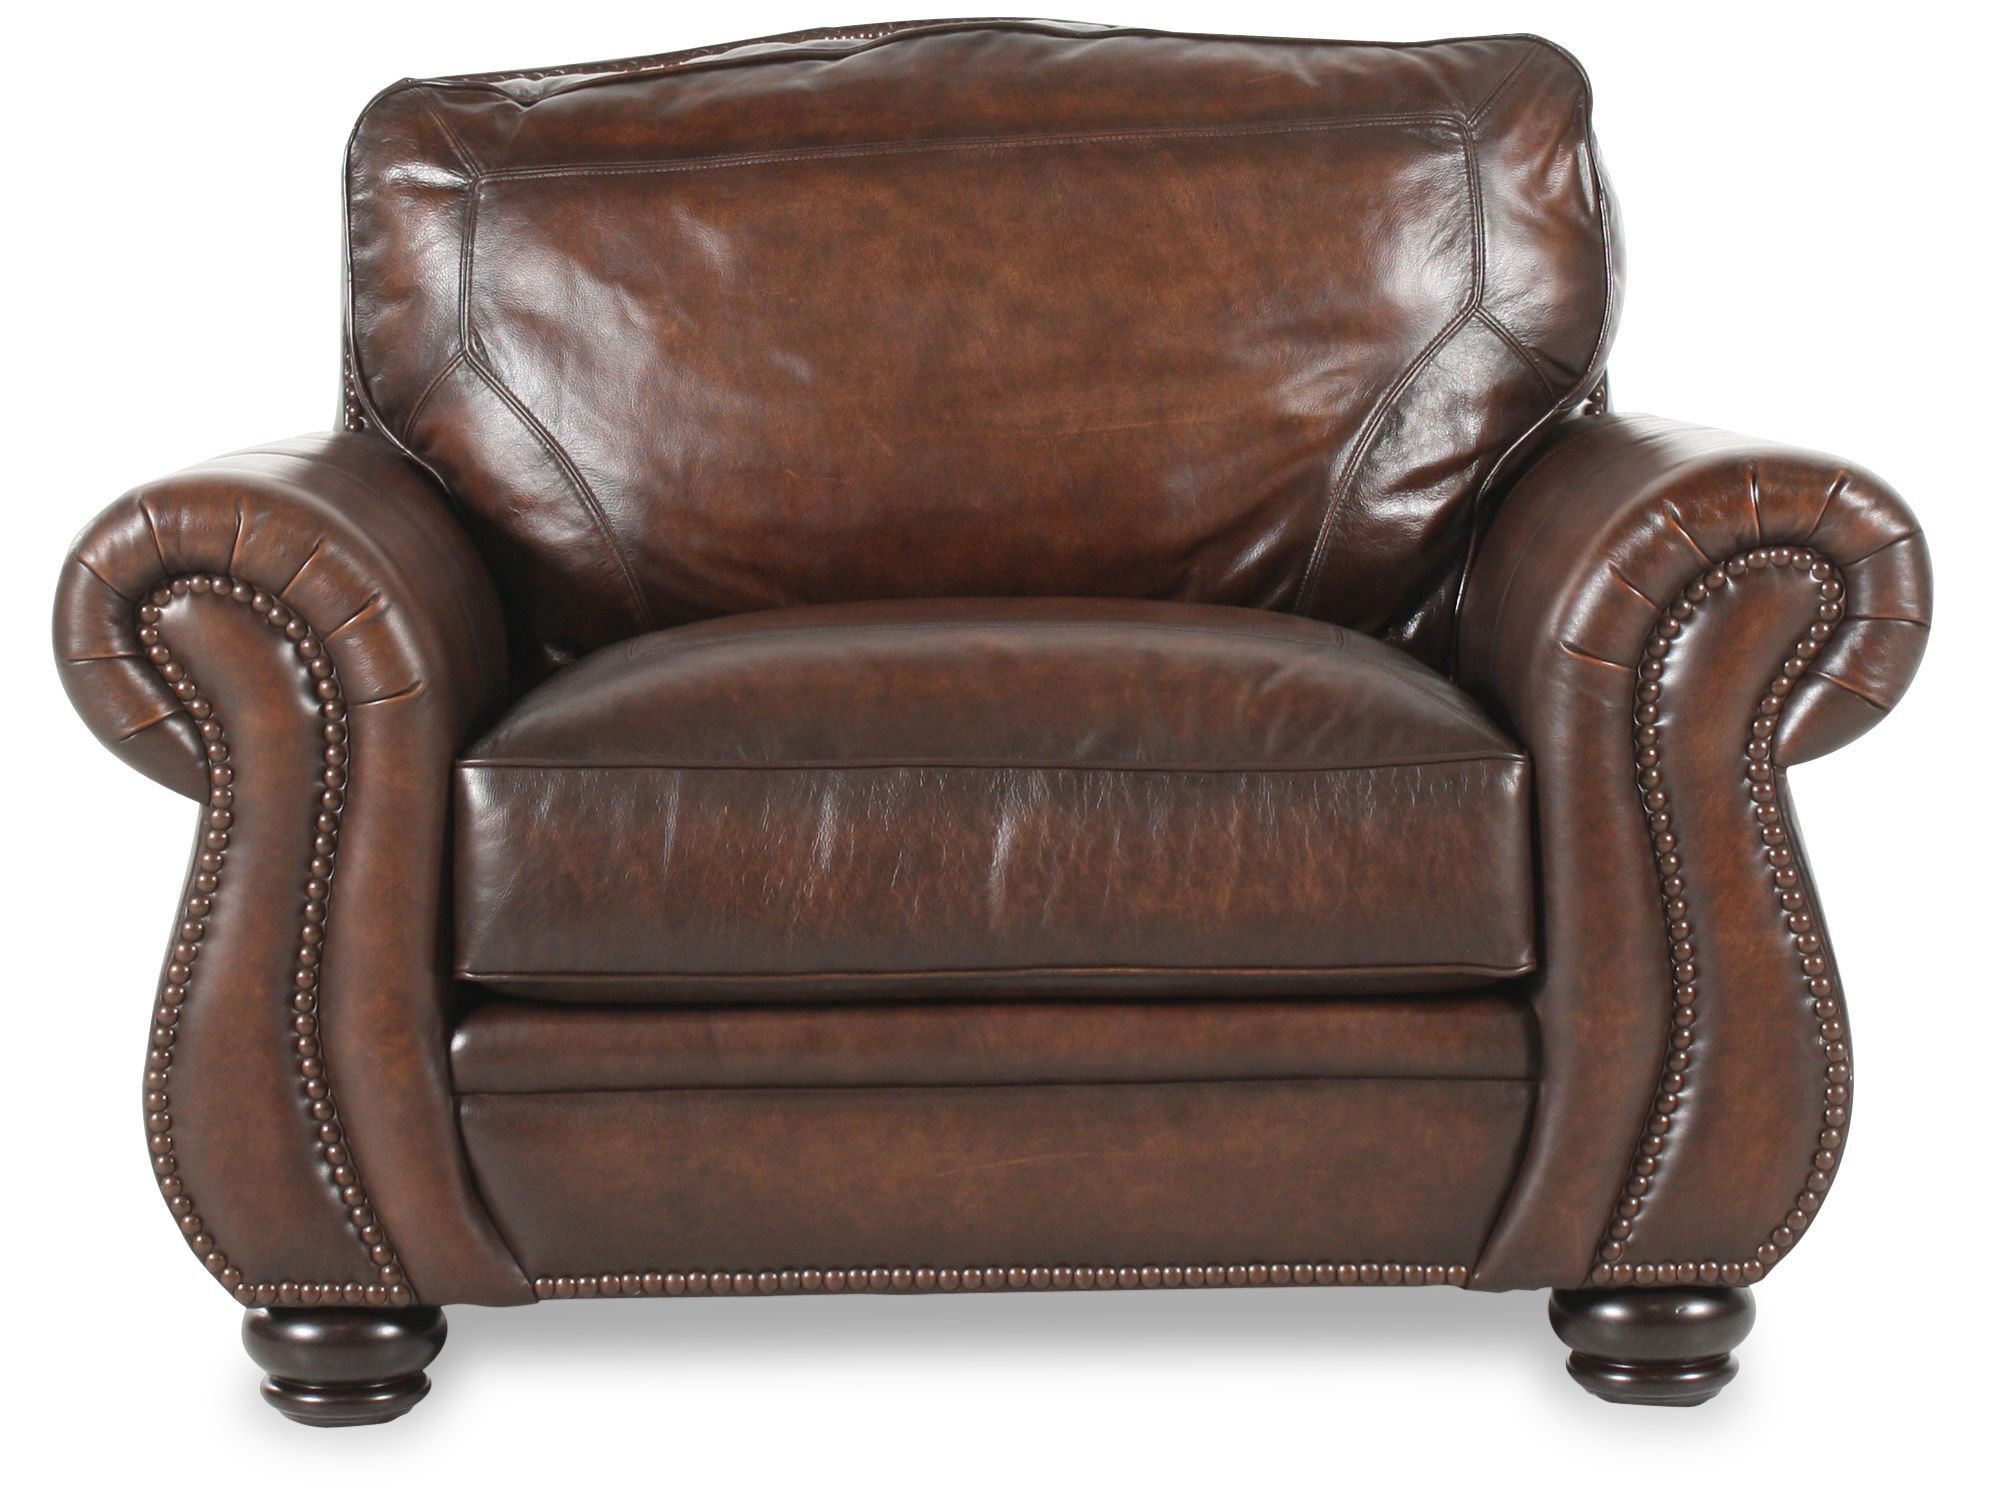 bernhardt breckenridge sofa gray sectional ashley furniture leather chair mathis brothers